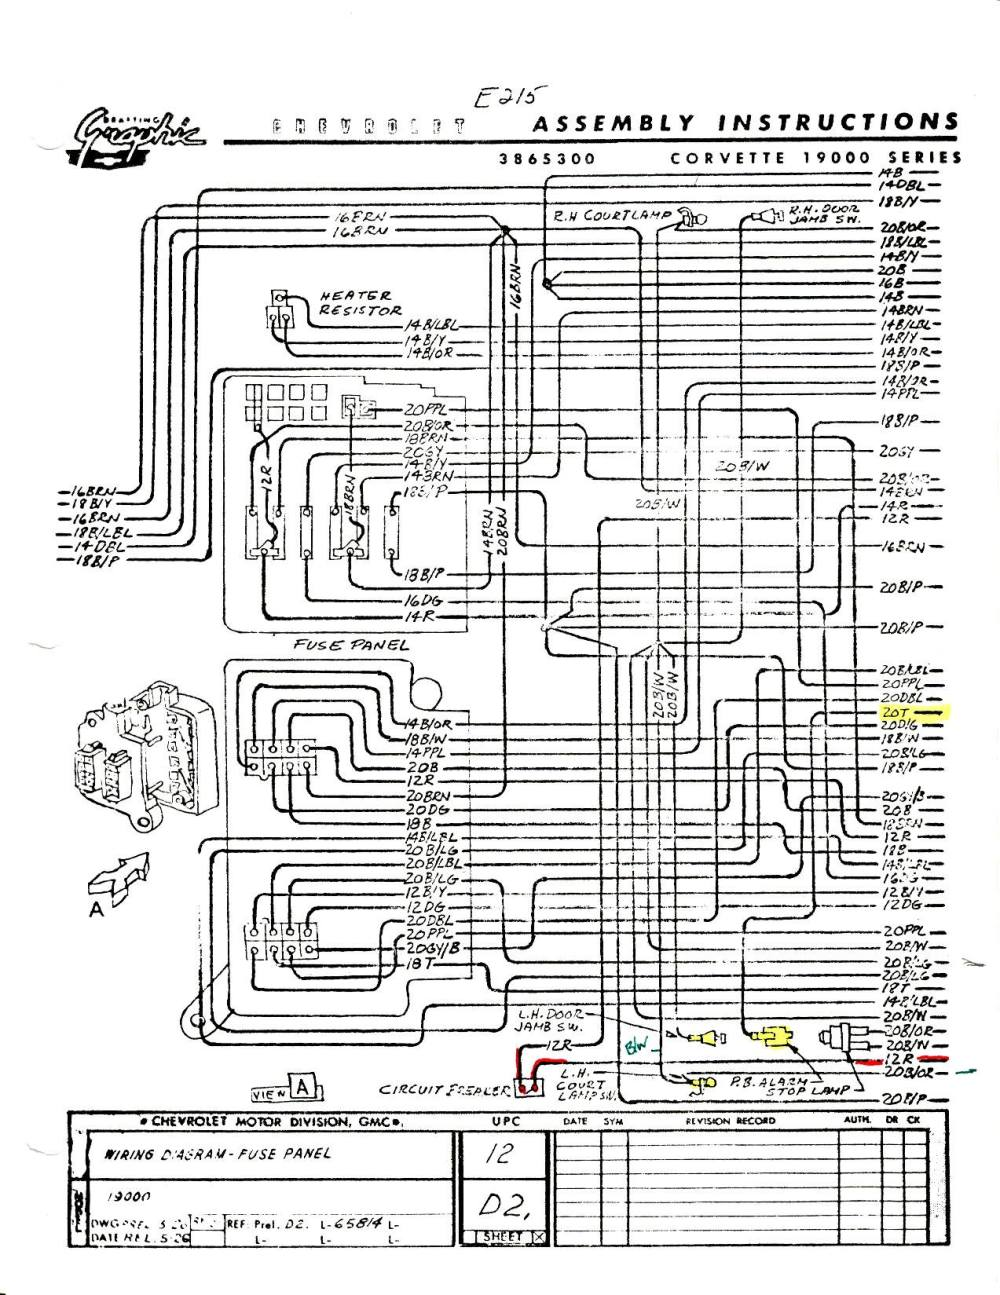 medium resolution of 1996 corvette wiring diagram